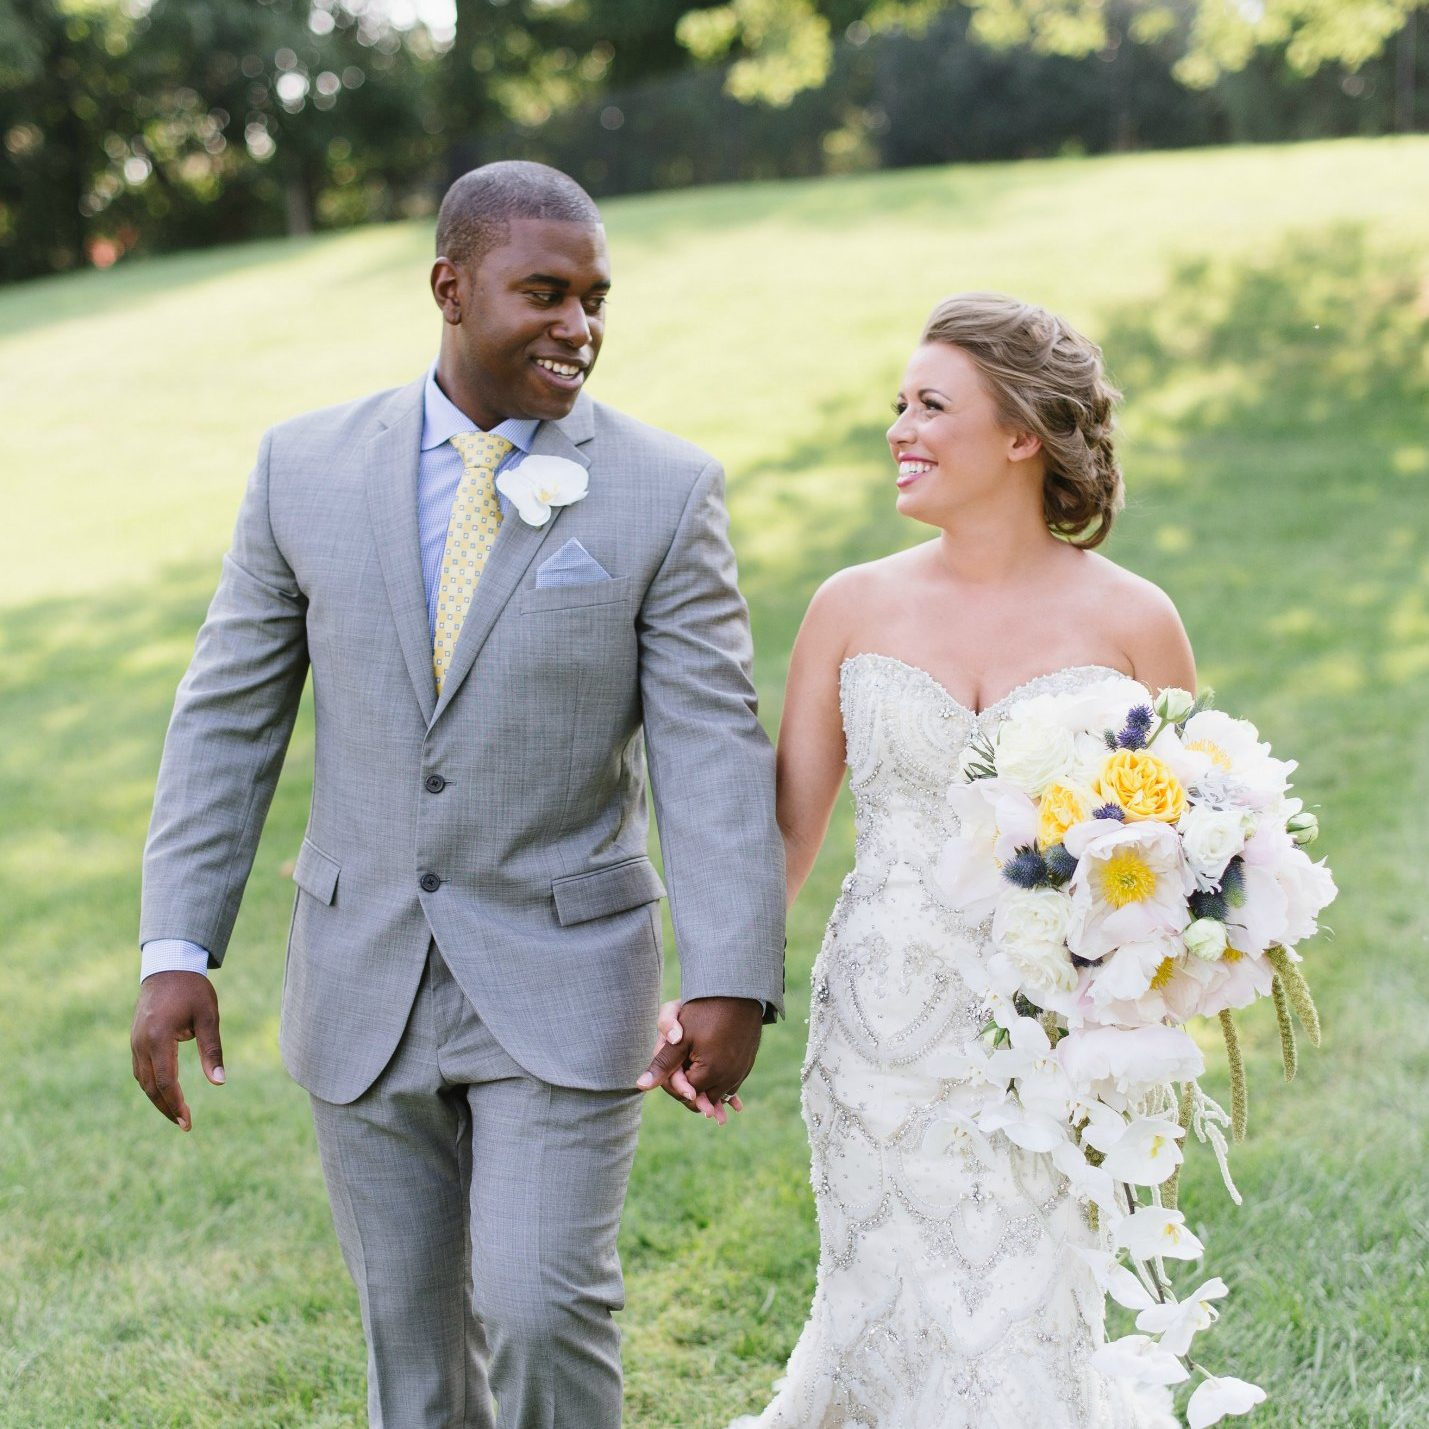 Luxe Shore Wedding | Dee Kay Events ǀ Downtown Annapolis, MD | Carroll House I Groom Suit